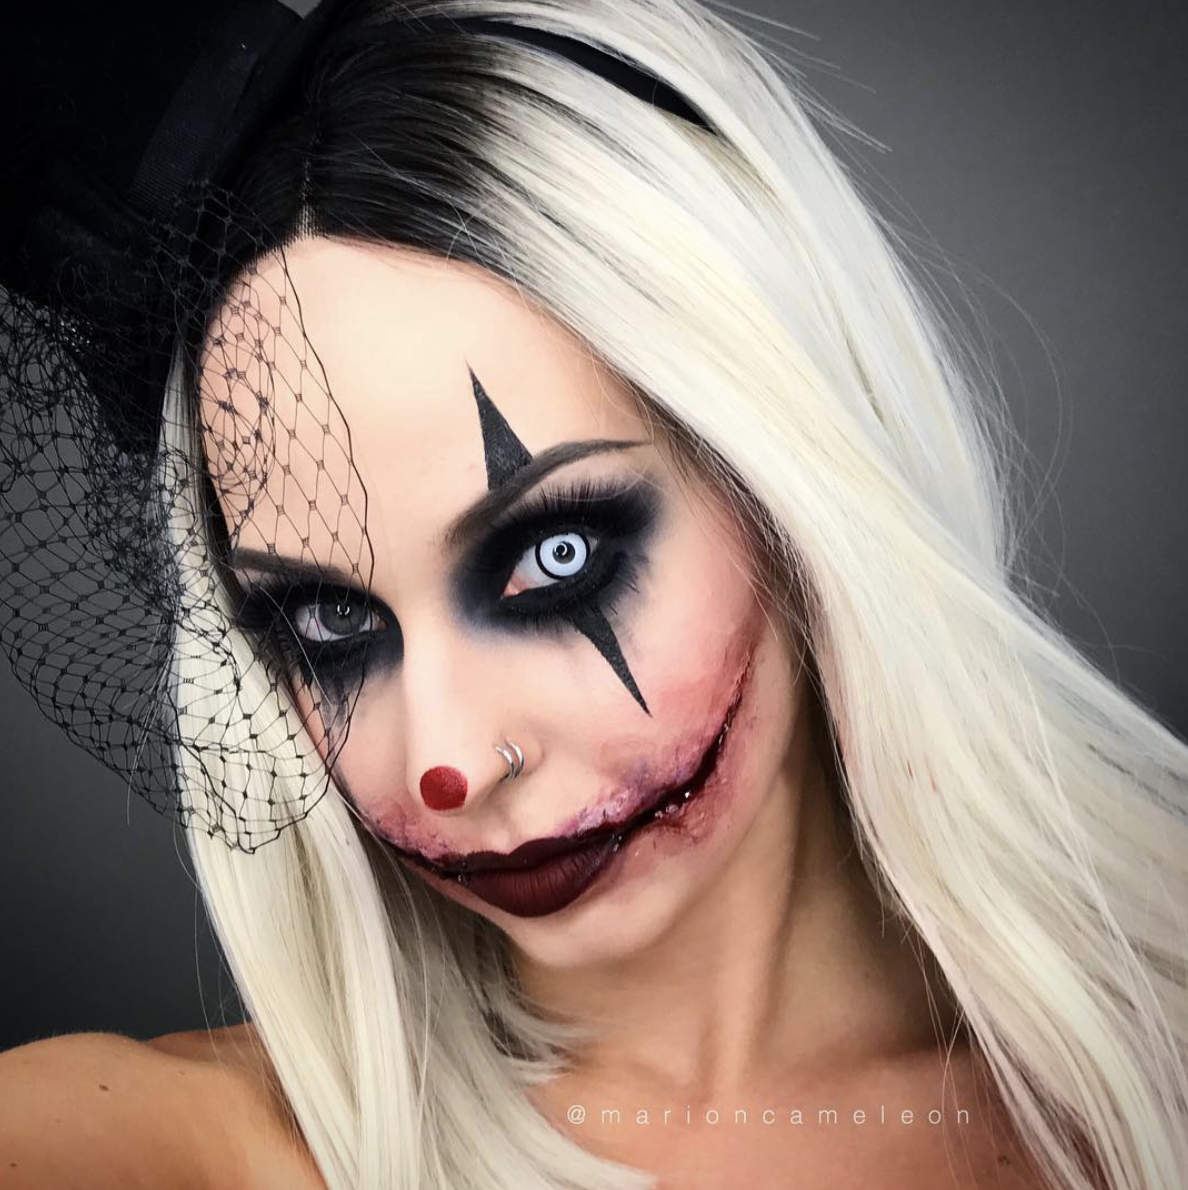 Maquillage Artistique Halloween.By Marion Cameleon Maquillage Halloween Maquillage Artistique Maquillage